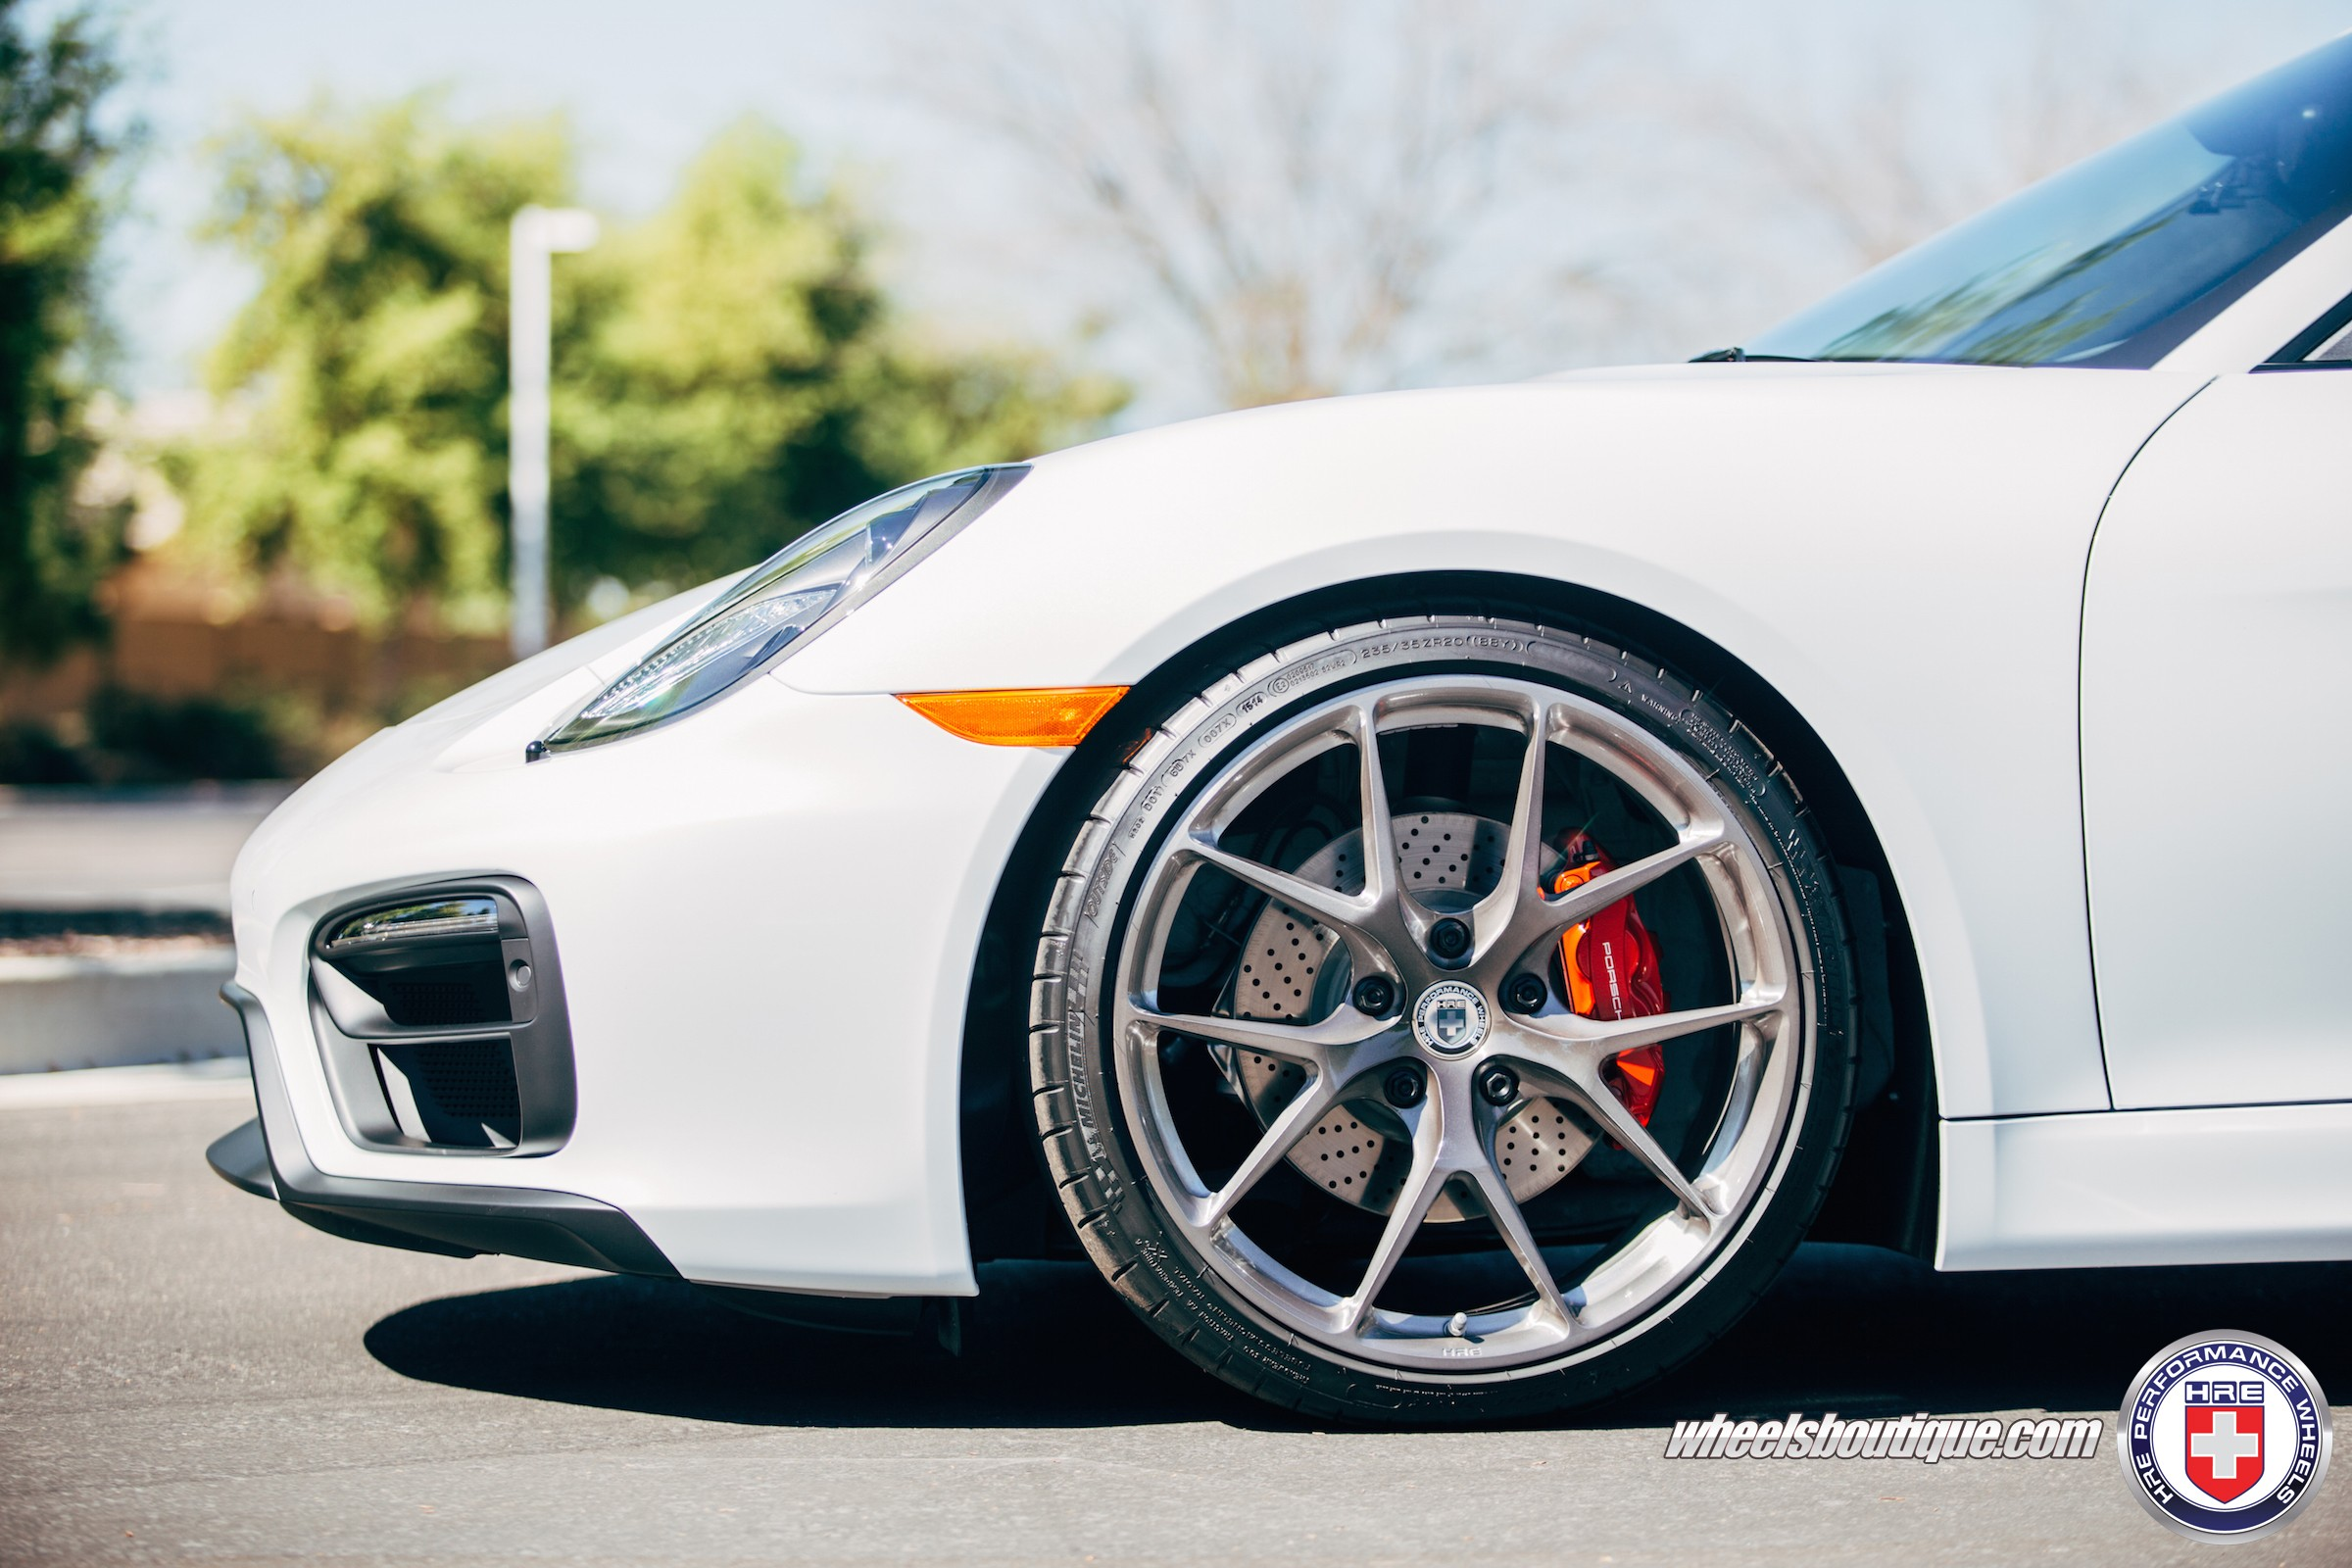 Porsche Cayman Gts On Hre Wheels Looks Technical Photo